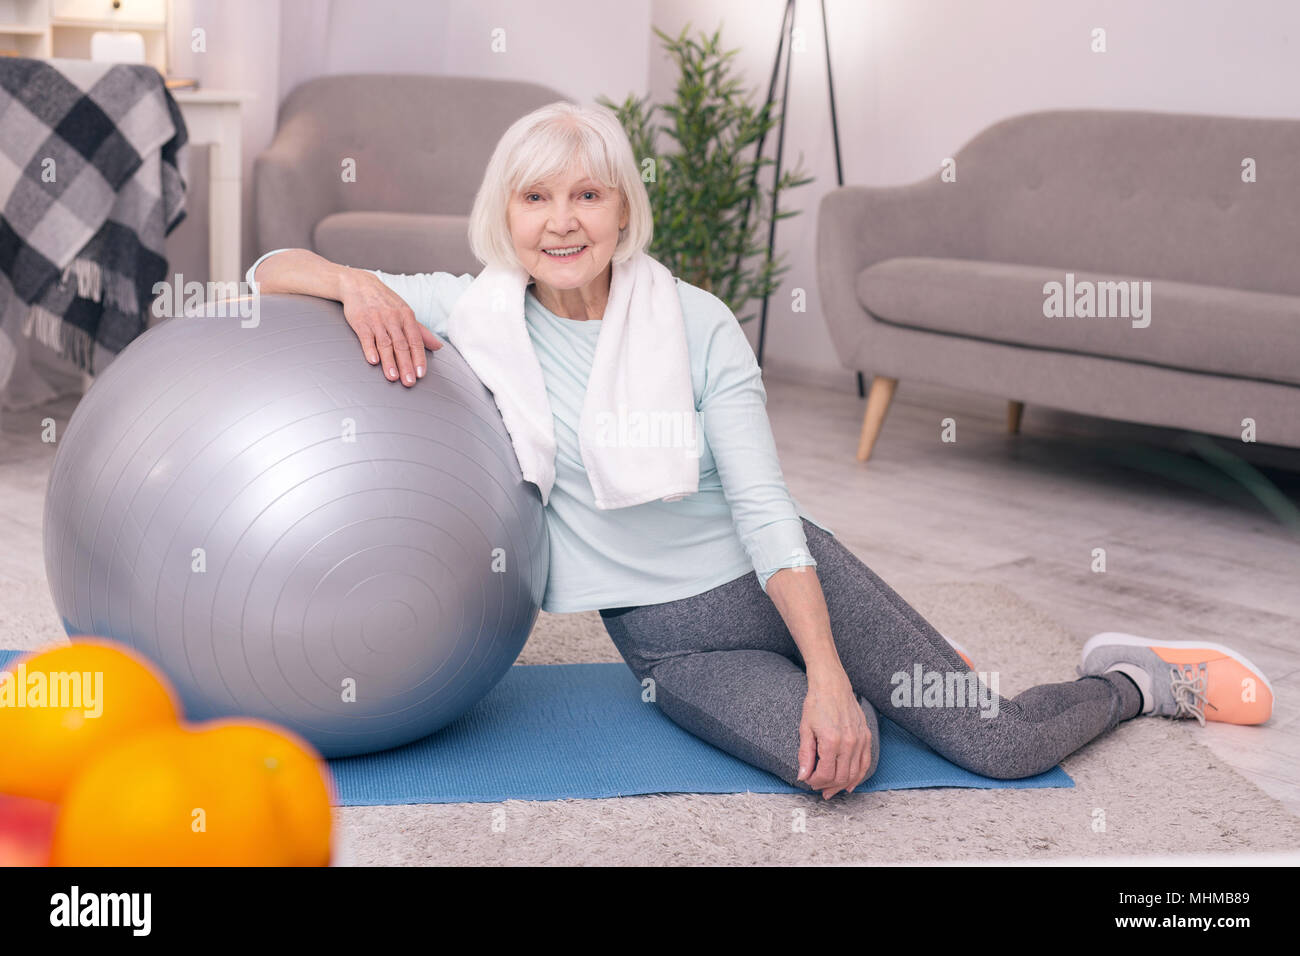 Charming elderly woman posing near exercise ball - Stock Image